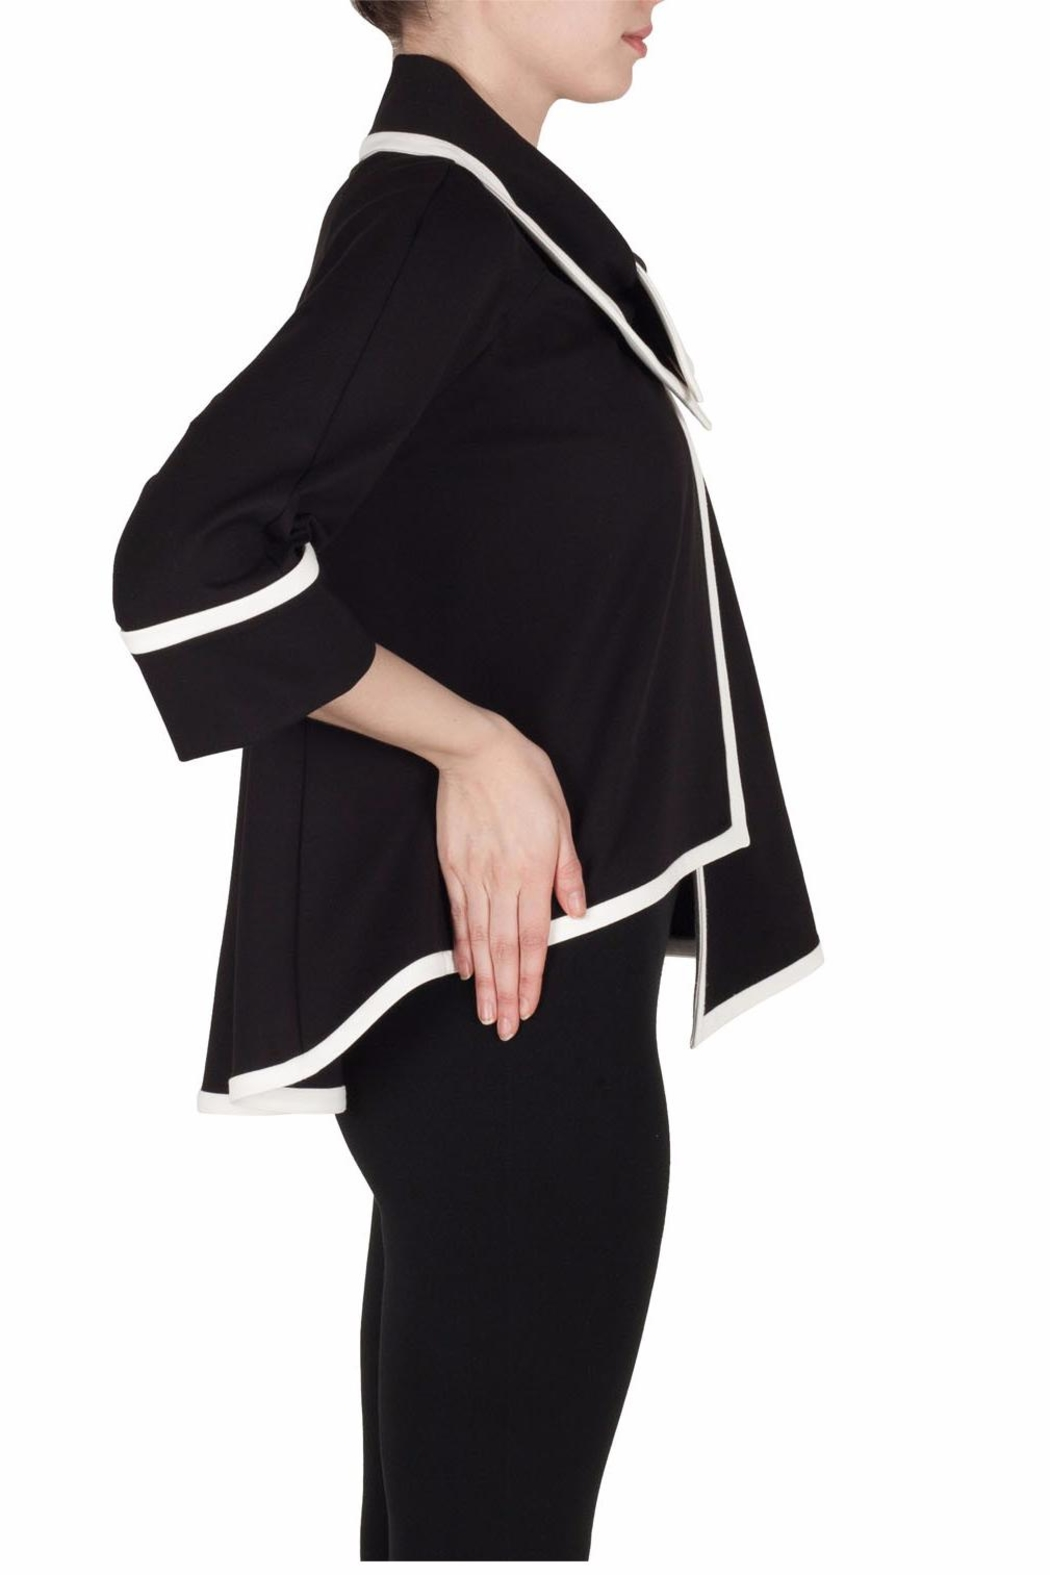 Joseph Ribkoff Elegant Black Jacket - Side Cropped Image